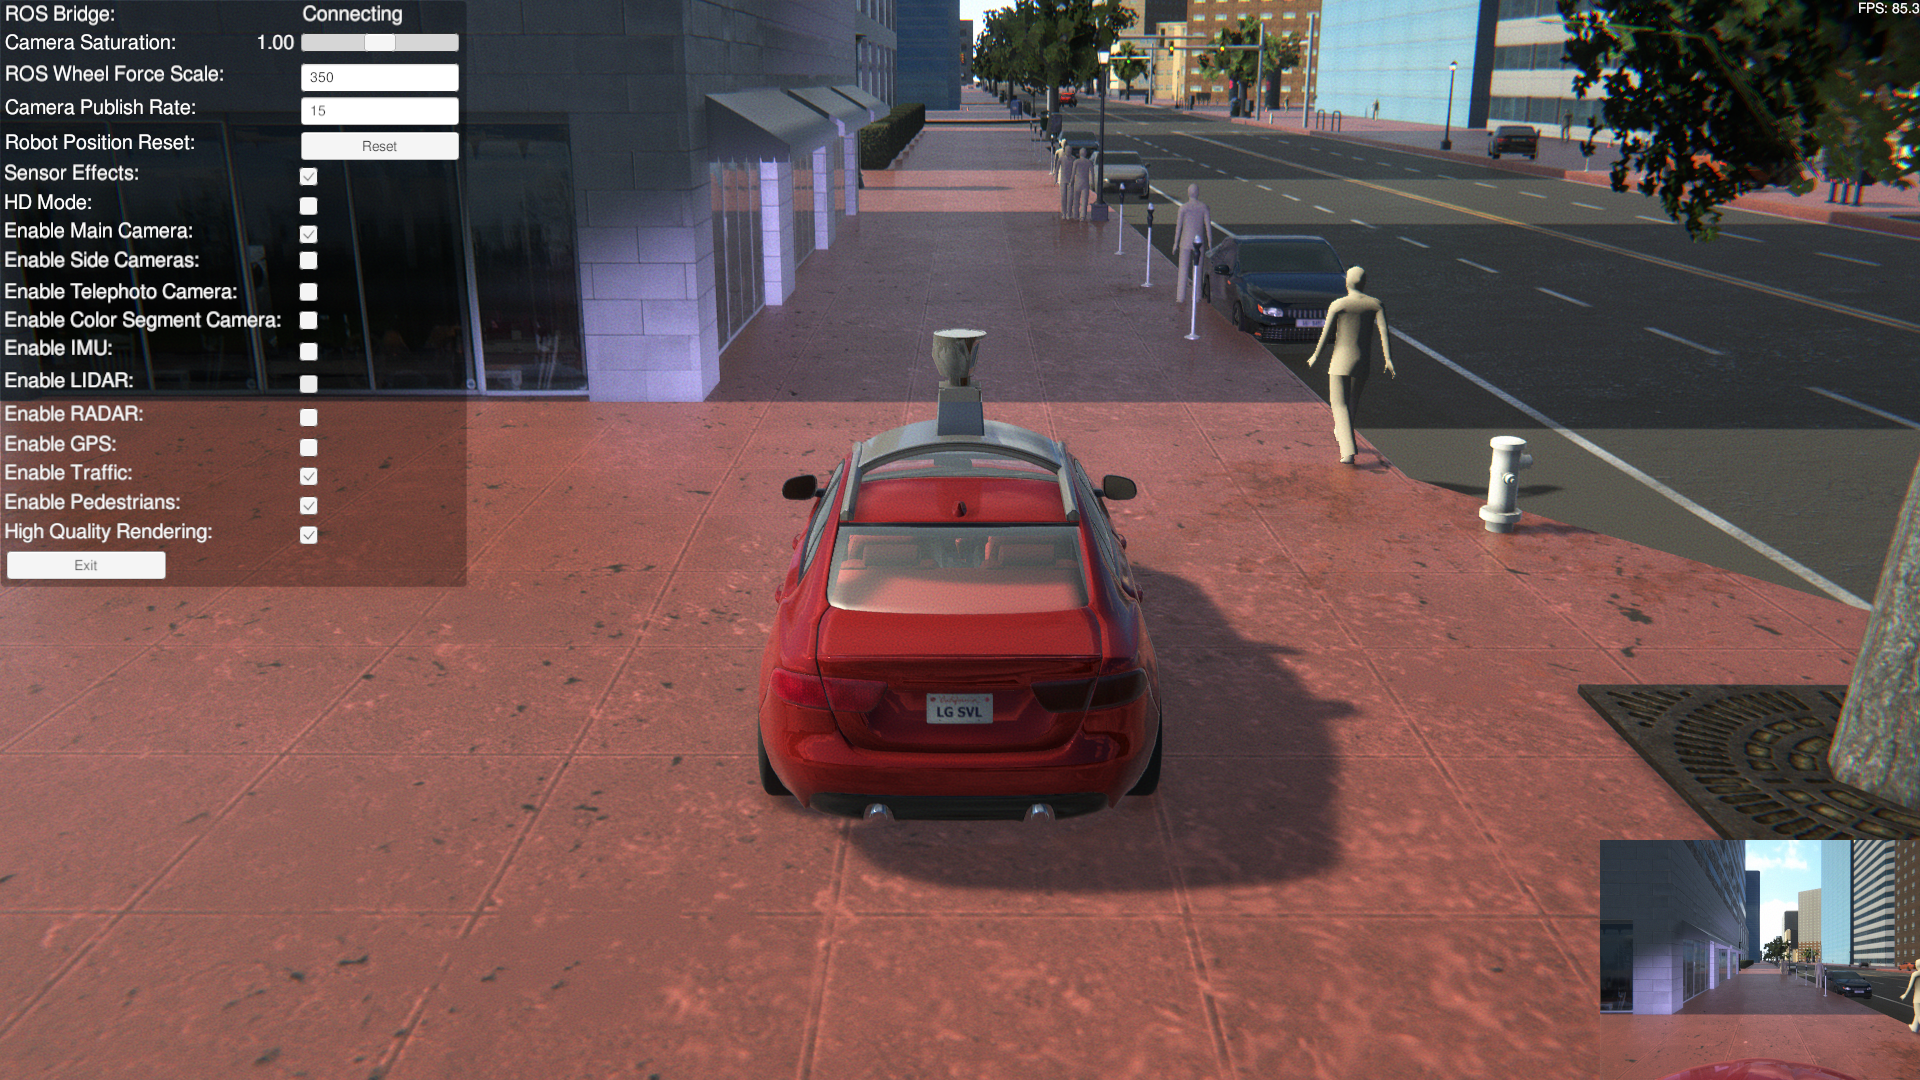 No texture in pedestrian · Issue #33 · lgsvl/simulator · GitHub